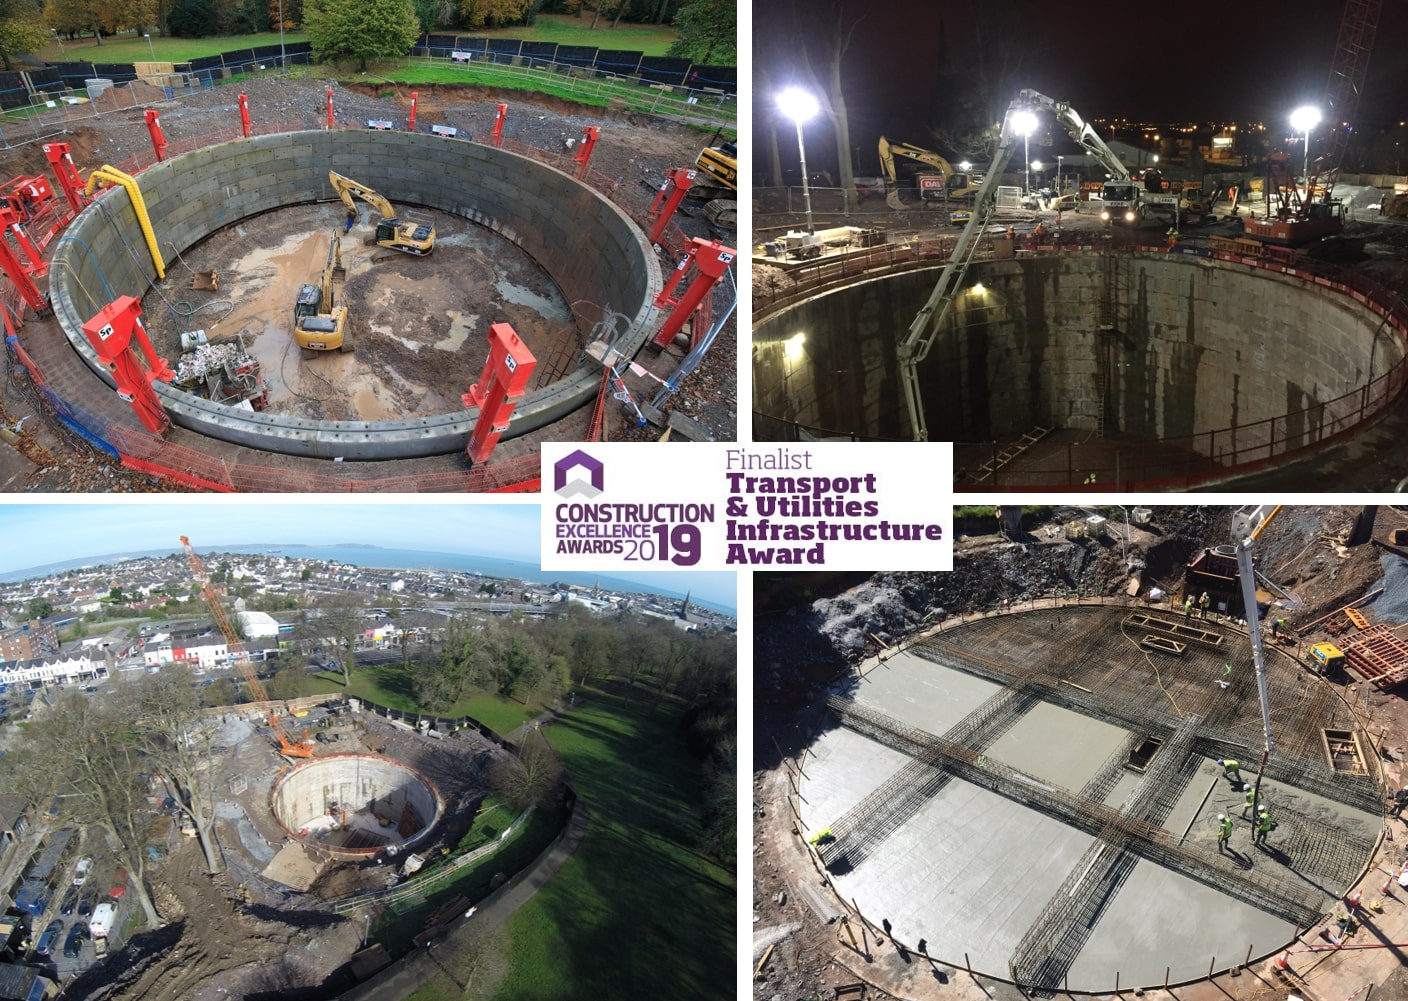 Shortlisted for the Construction Employers Federation (CEF) Construction Excellence Awards 2019!